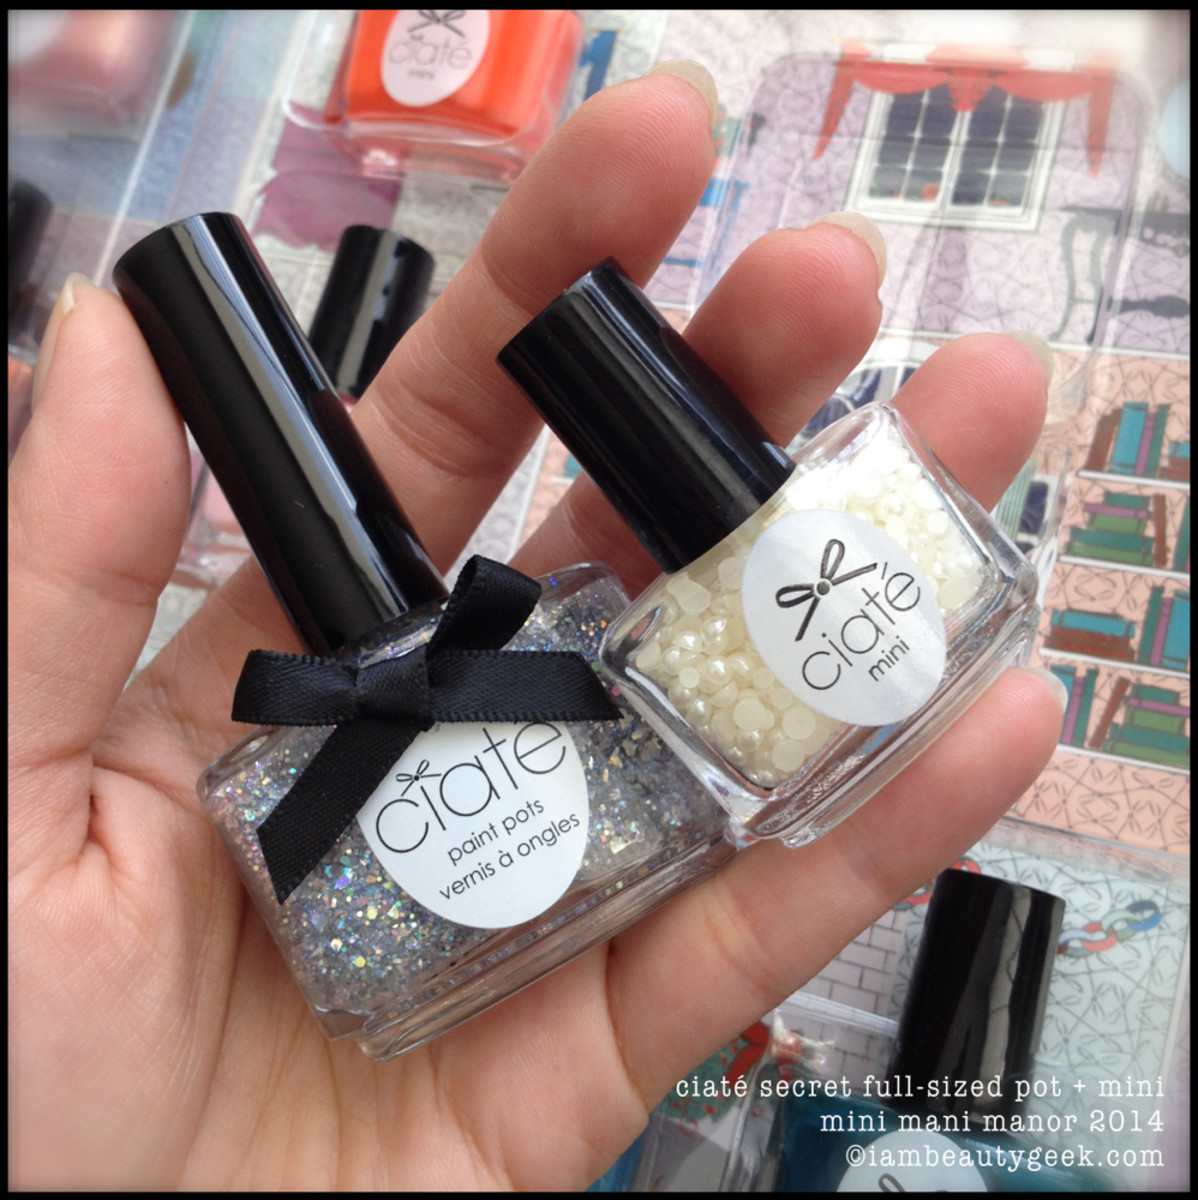 Ciate Mini Mani Manor Sephora 2014_10